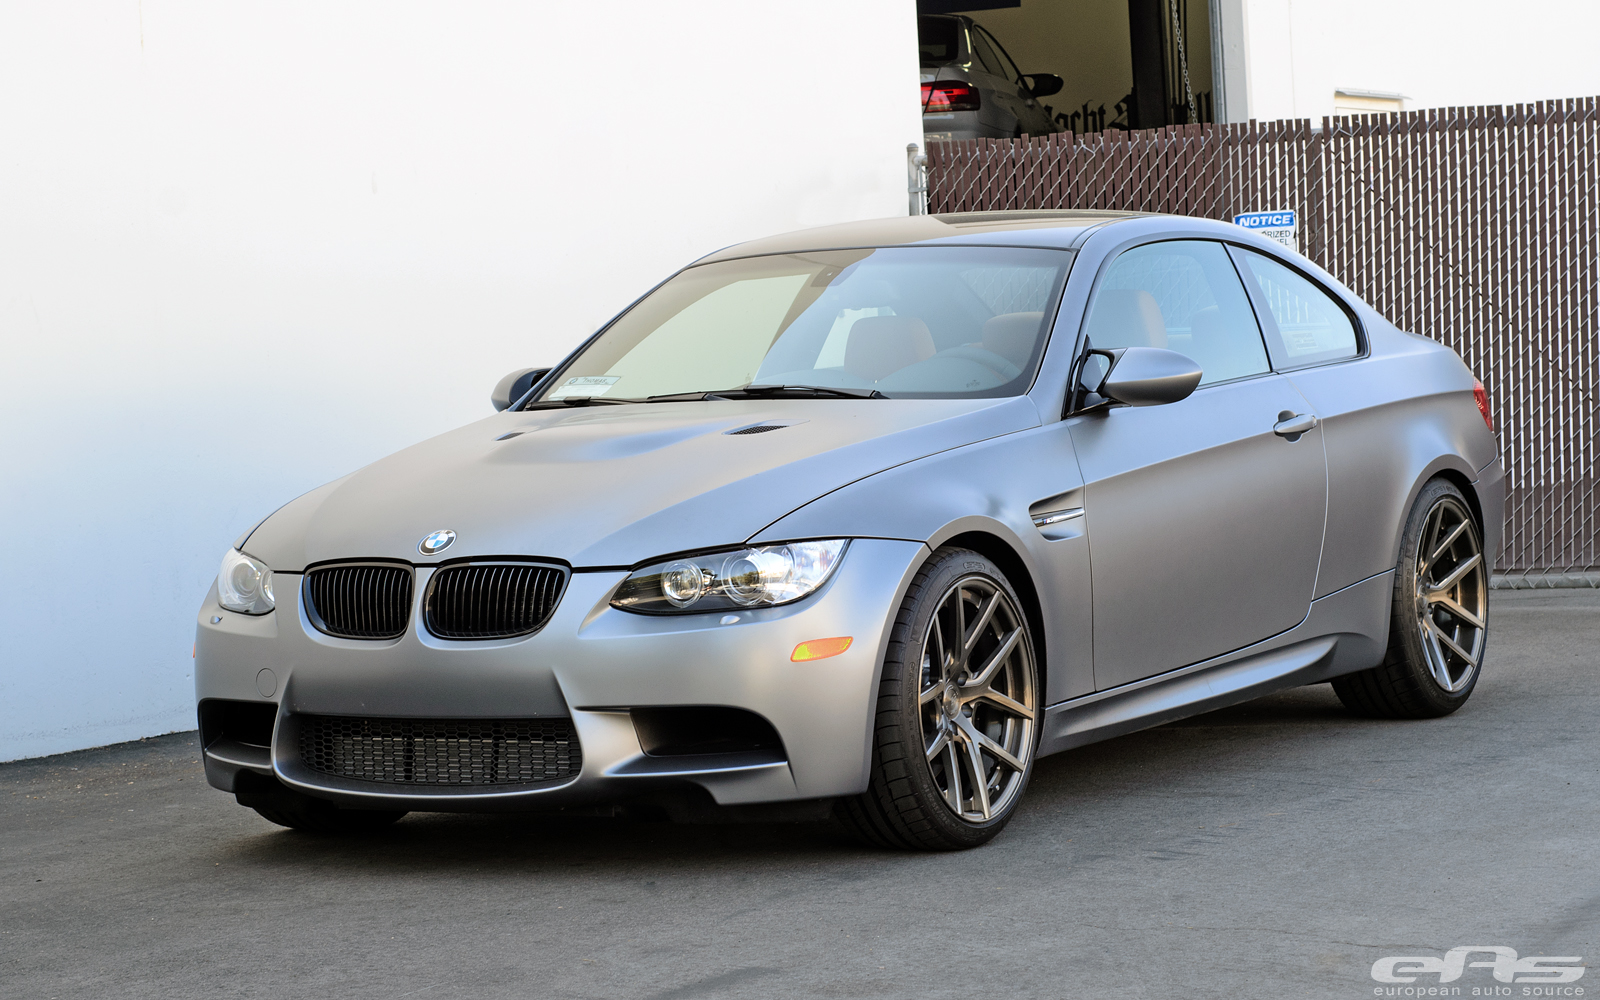 frozen silver bmw e92 m3 with rust brown leather looks good autoevolution. Black Bedroom Furniture Sets. Home Design Ideas